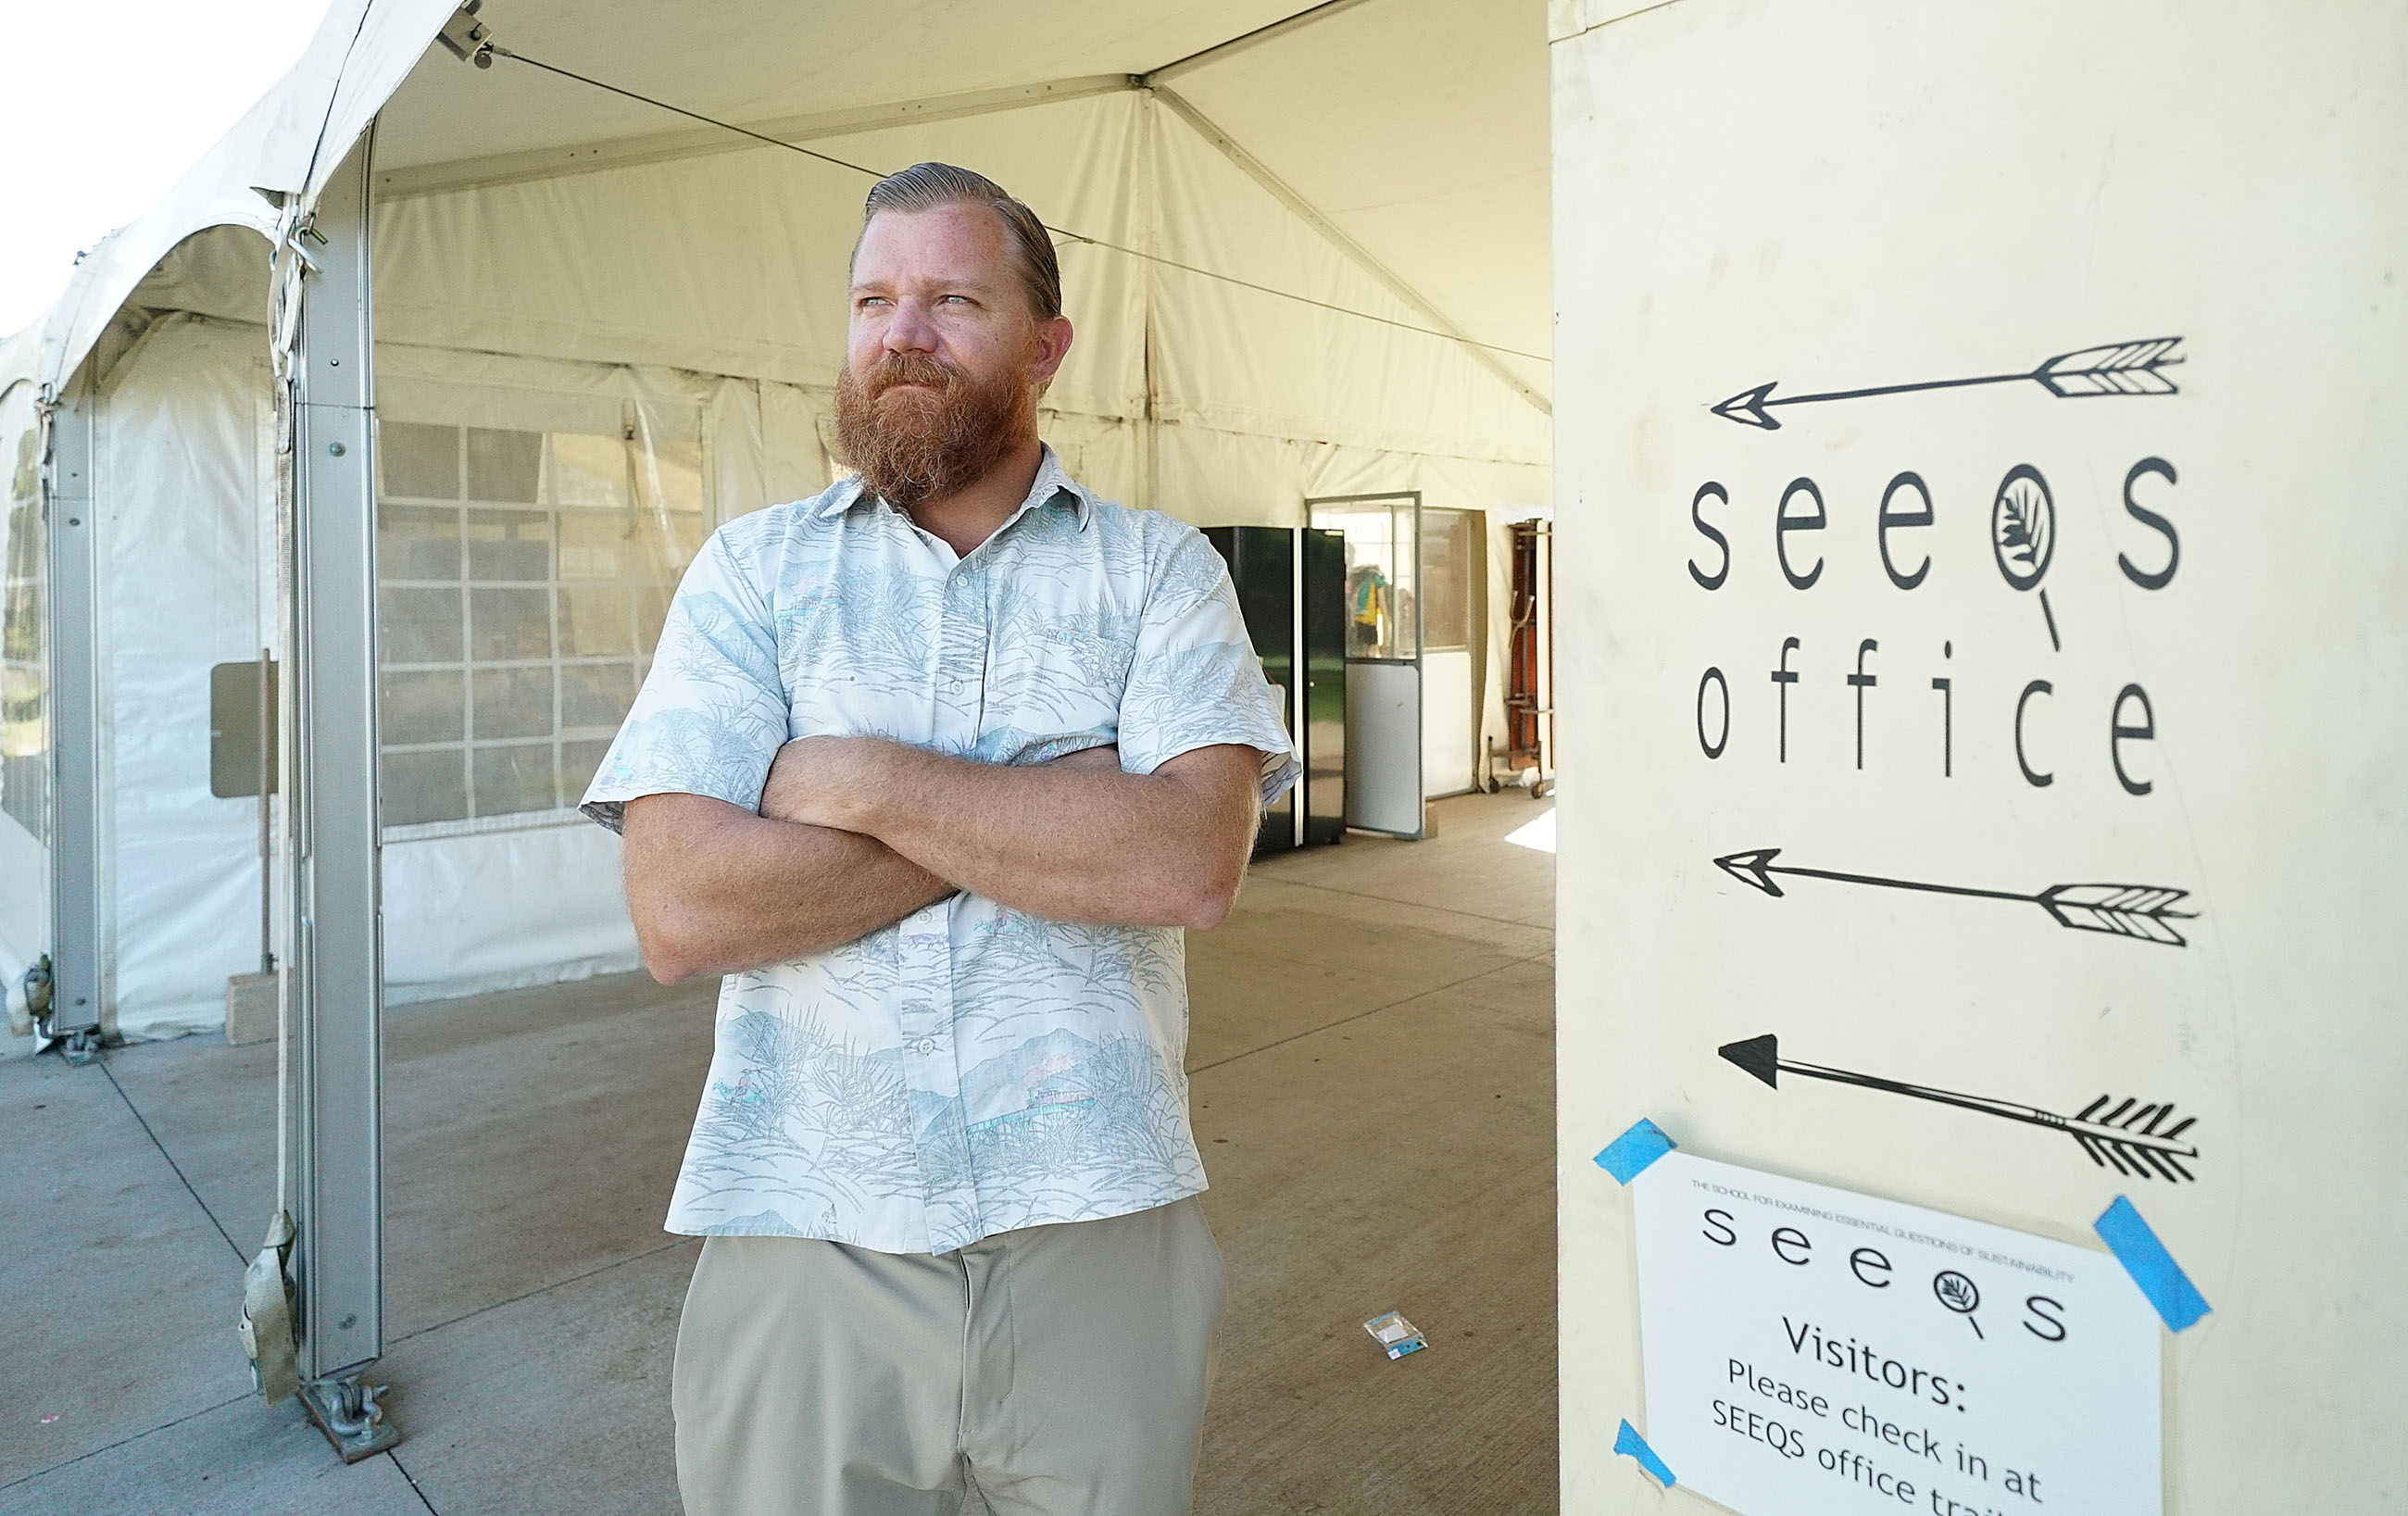 SEEQ Teacher Shane Albritton at Kaimuki High School SEEQ tent in background.